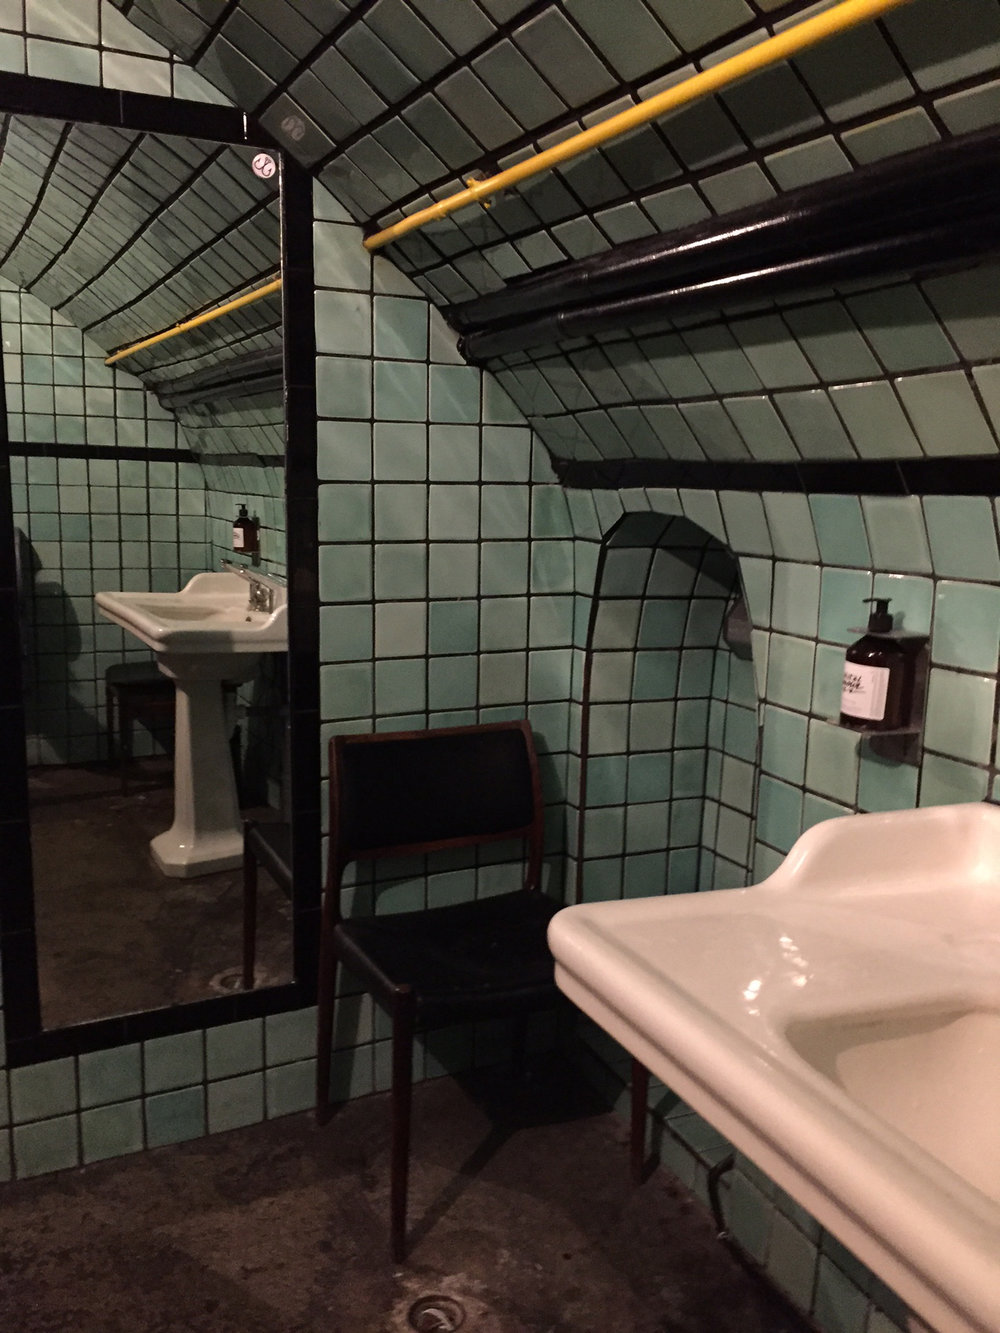 Vintage aqua tiles in the vaulted bathroom.